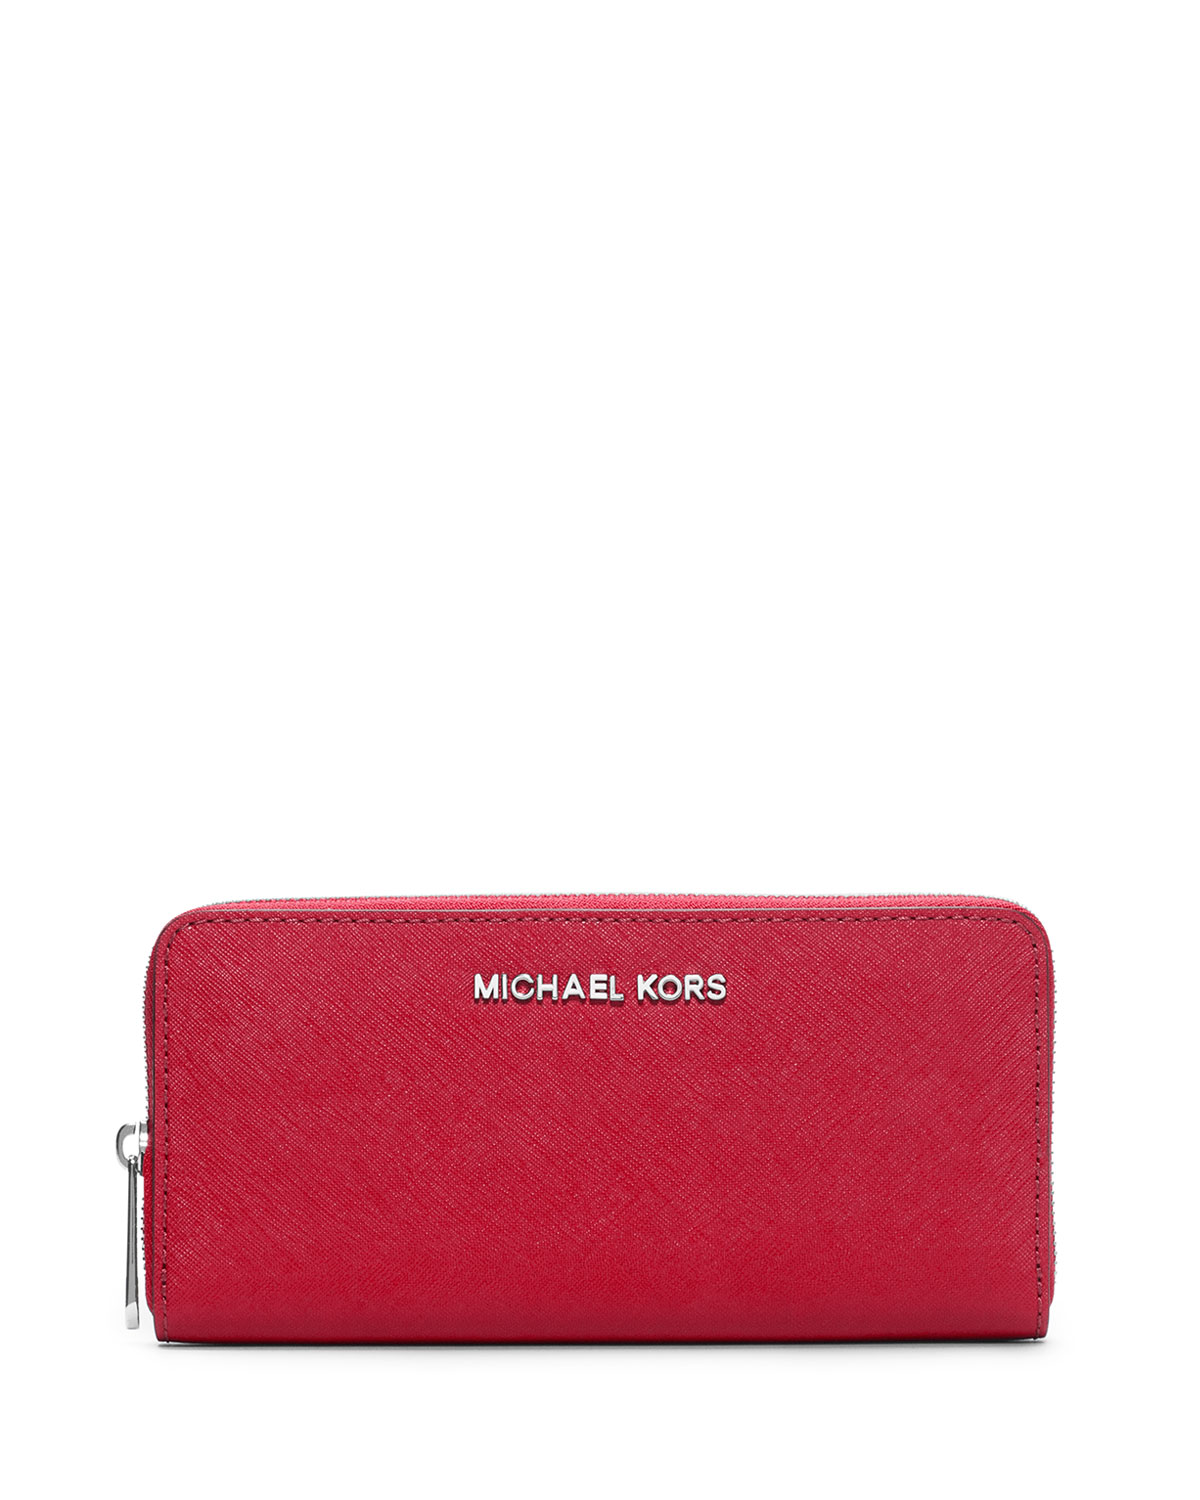 690f0fed4b95de MICHAEL Michael Kors Jet Set Zip-Around Continental Travel Wallet, Chili